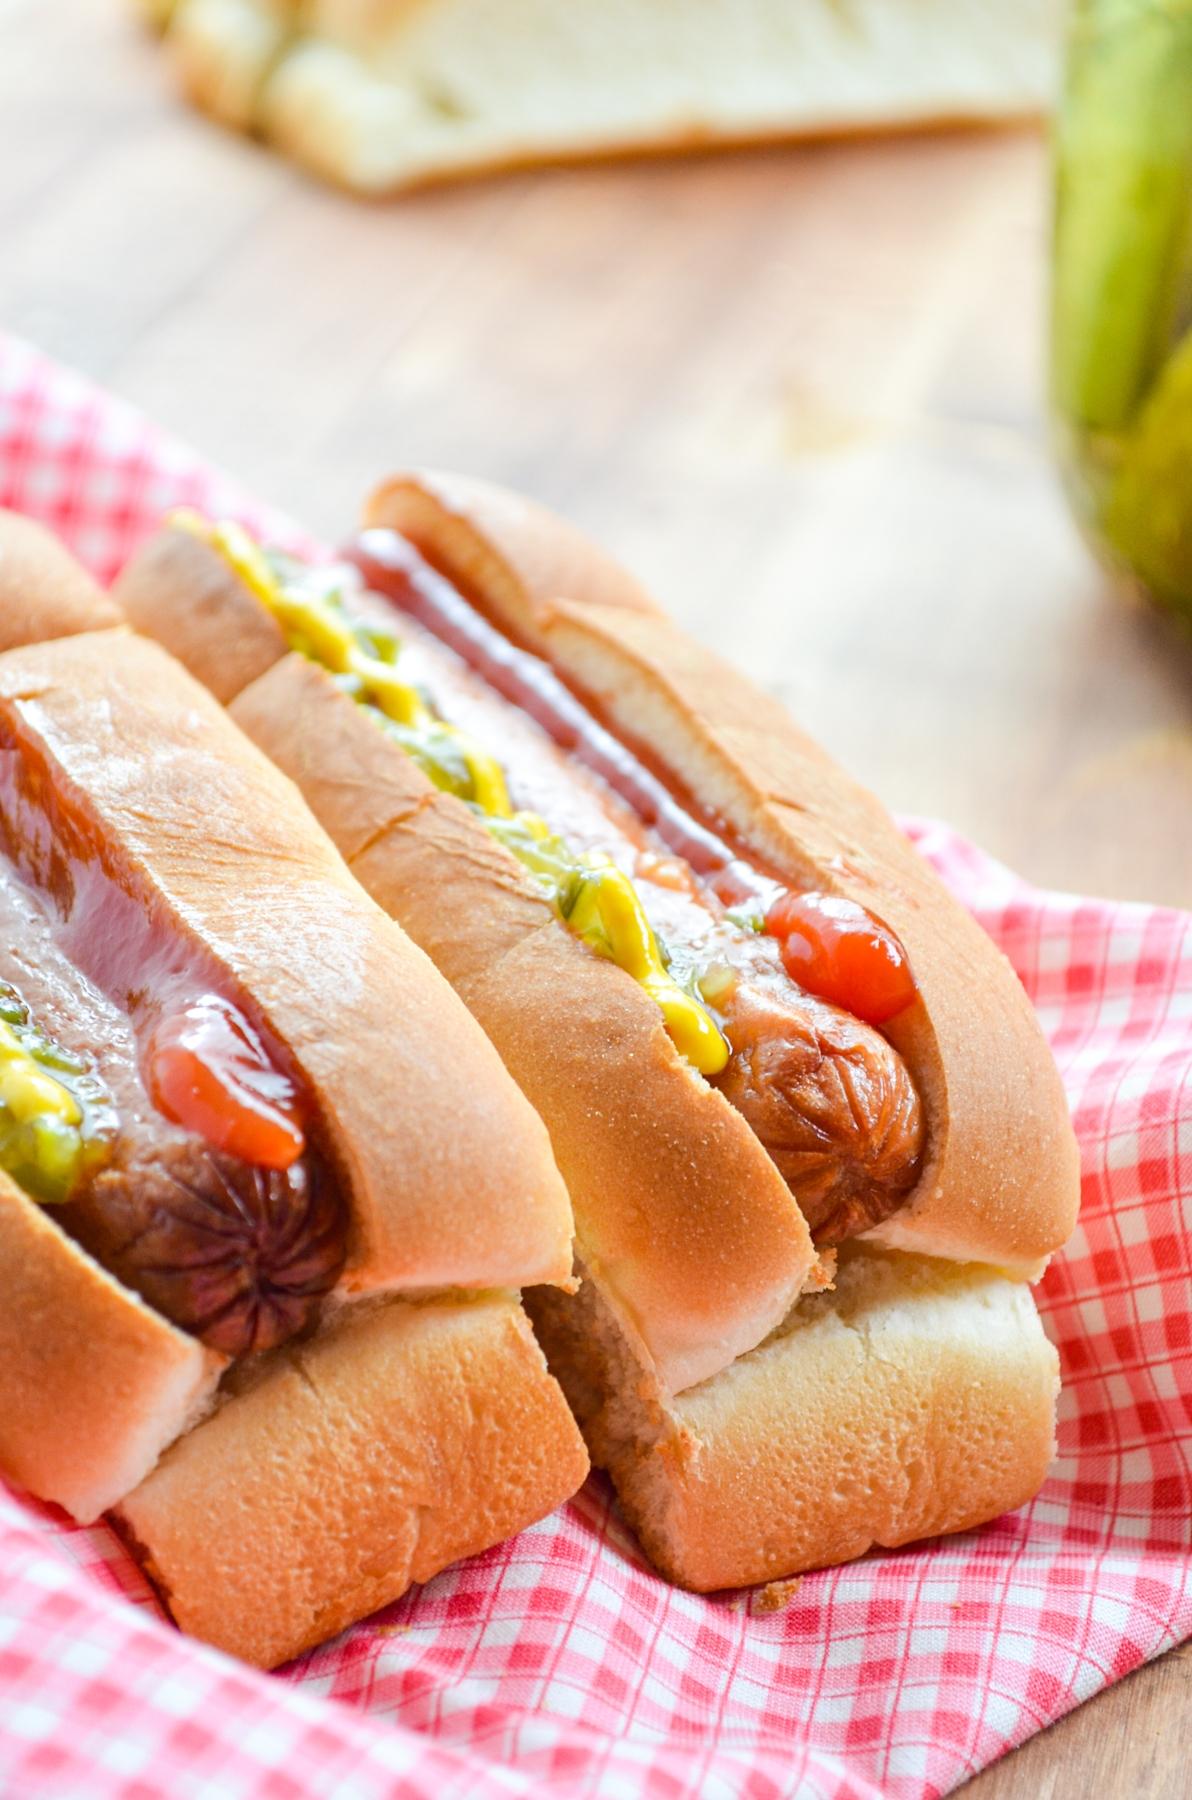 Two hot dogs, served in toasted buns and served with classic toppings.